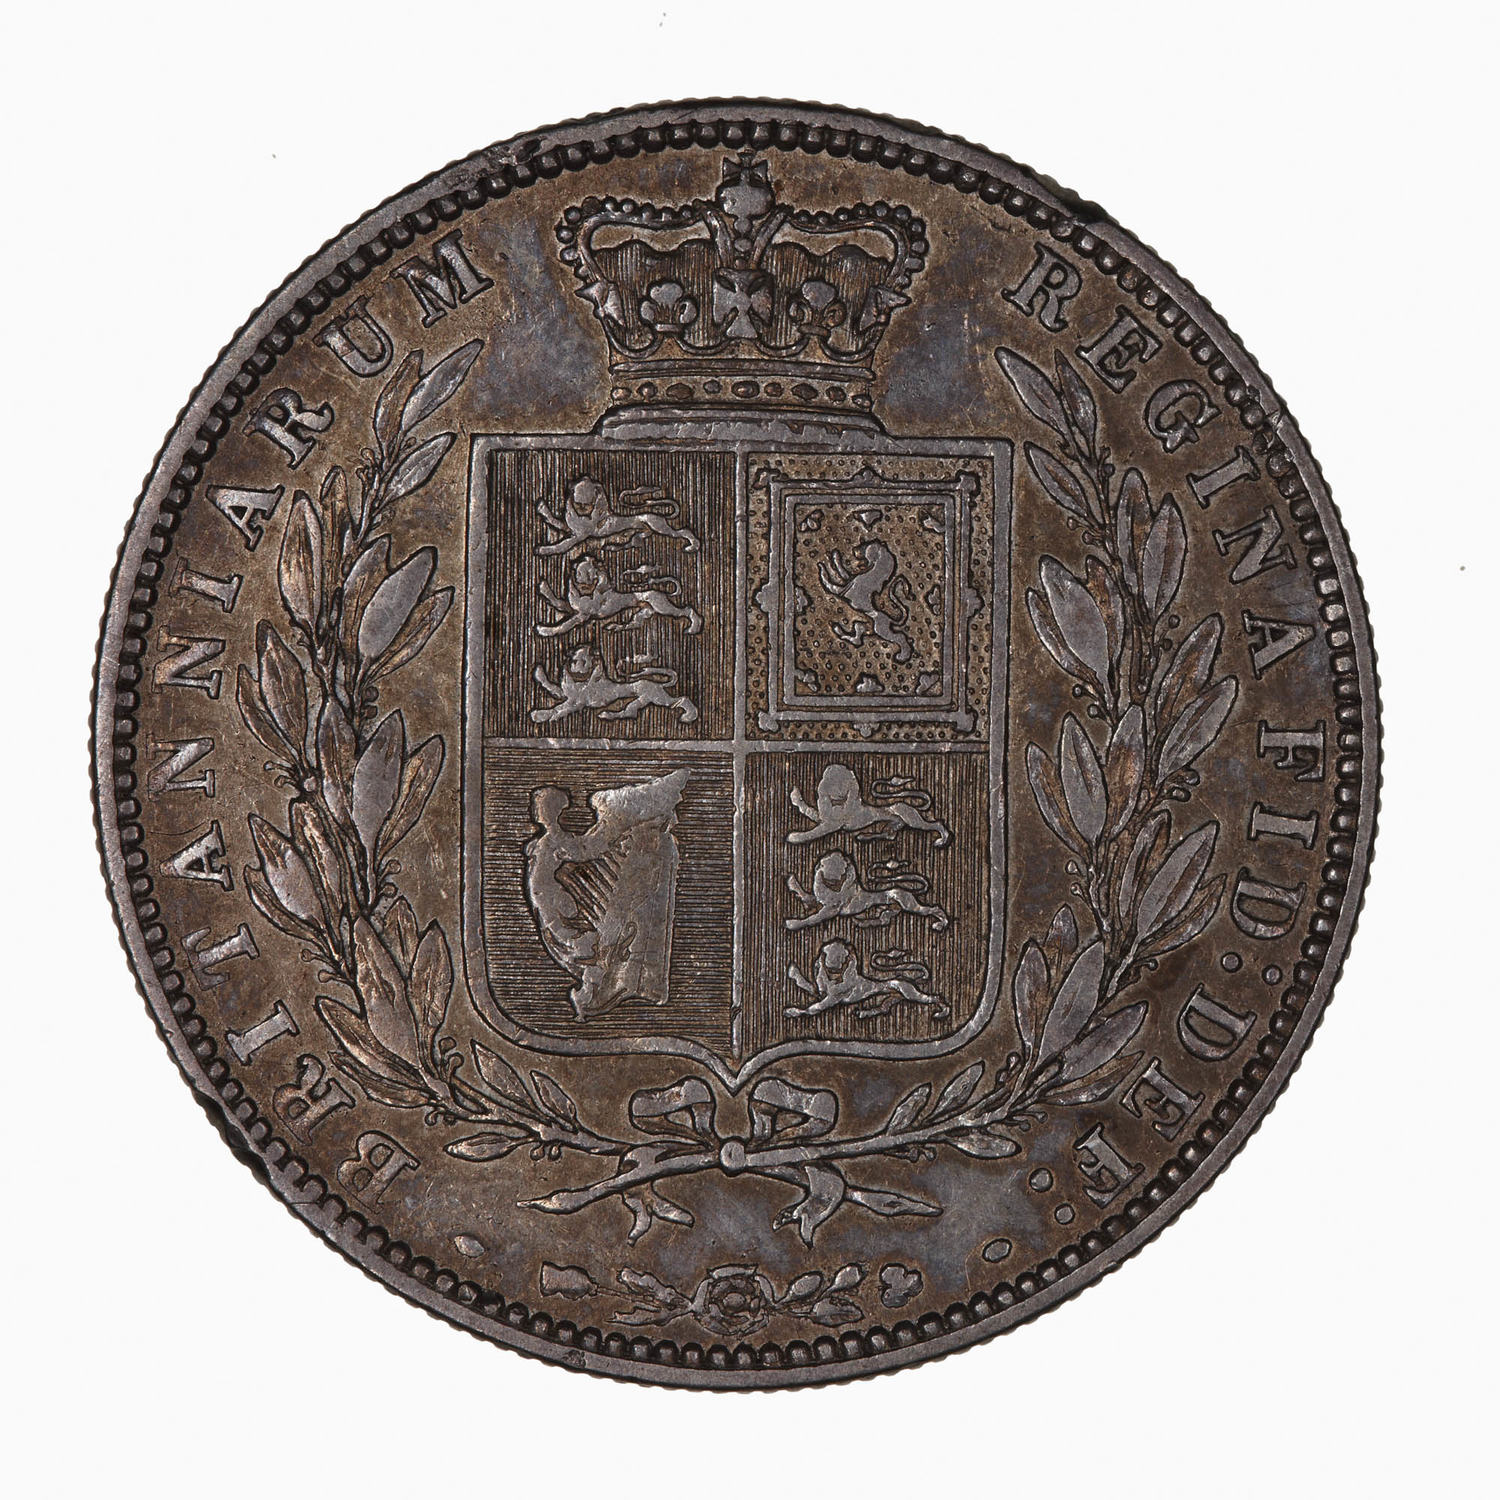 Halfcrown 1875: Photo Coin - Halfcrown, Queen Victoria, Great Britain, 1875